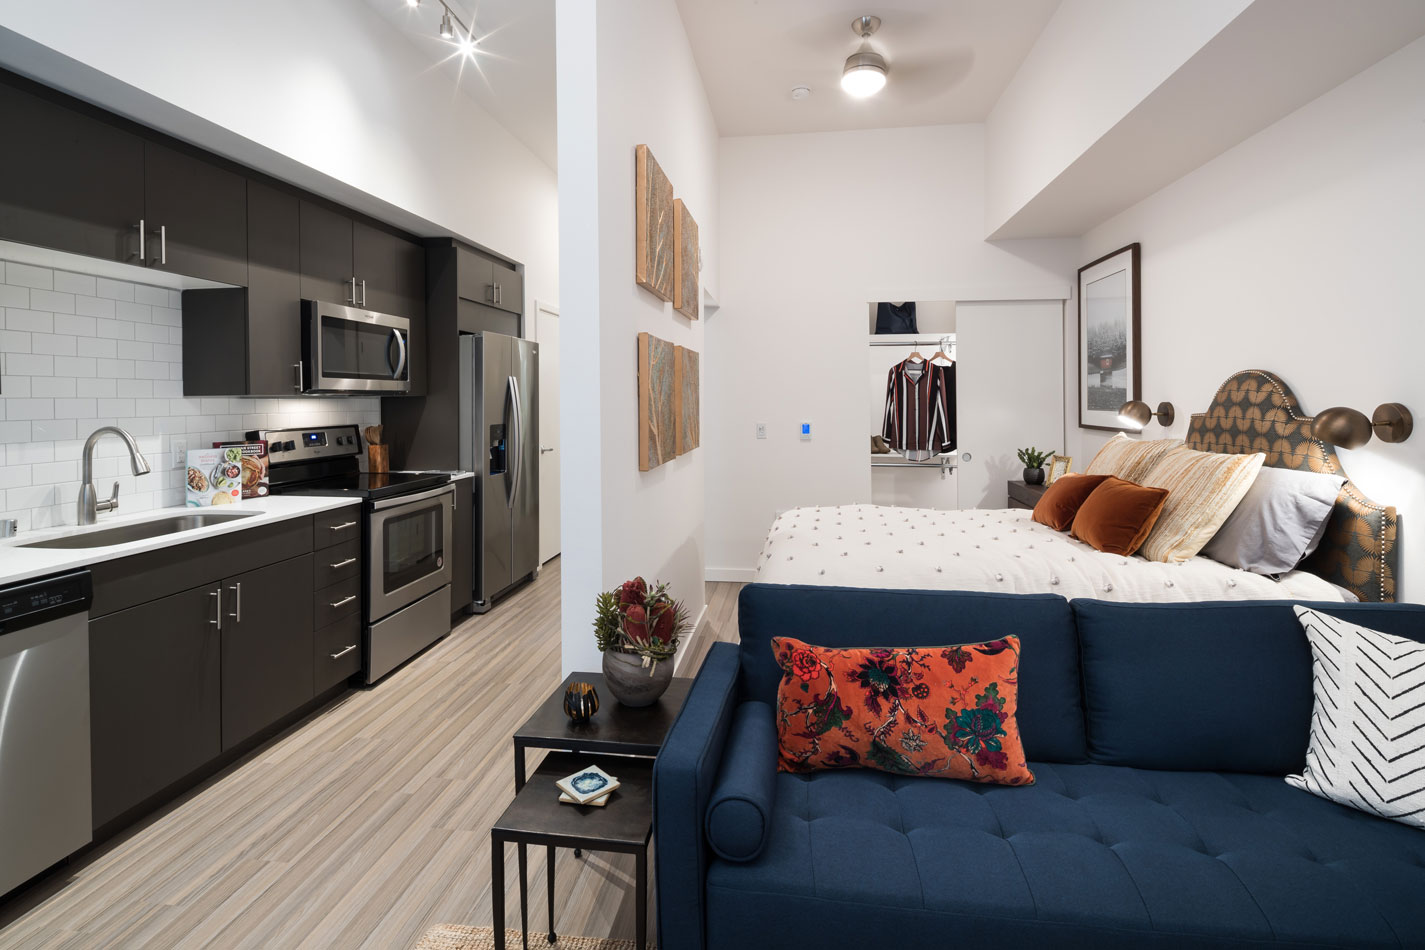 Studio apartment with long kitchen on the left featuring stainless steel appliances, living room couch and privacy wall separating the bed from the kitchen